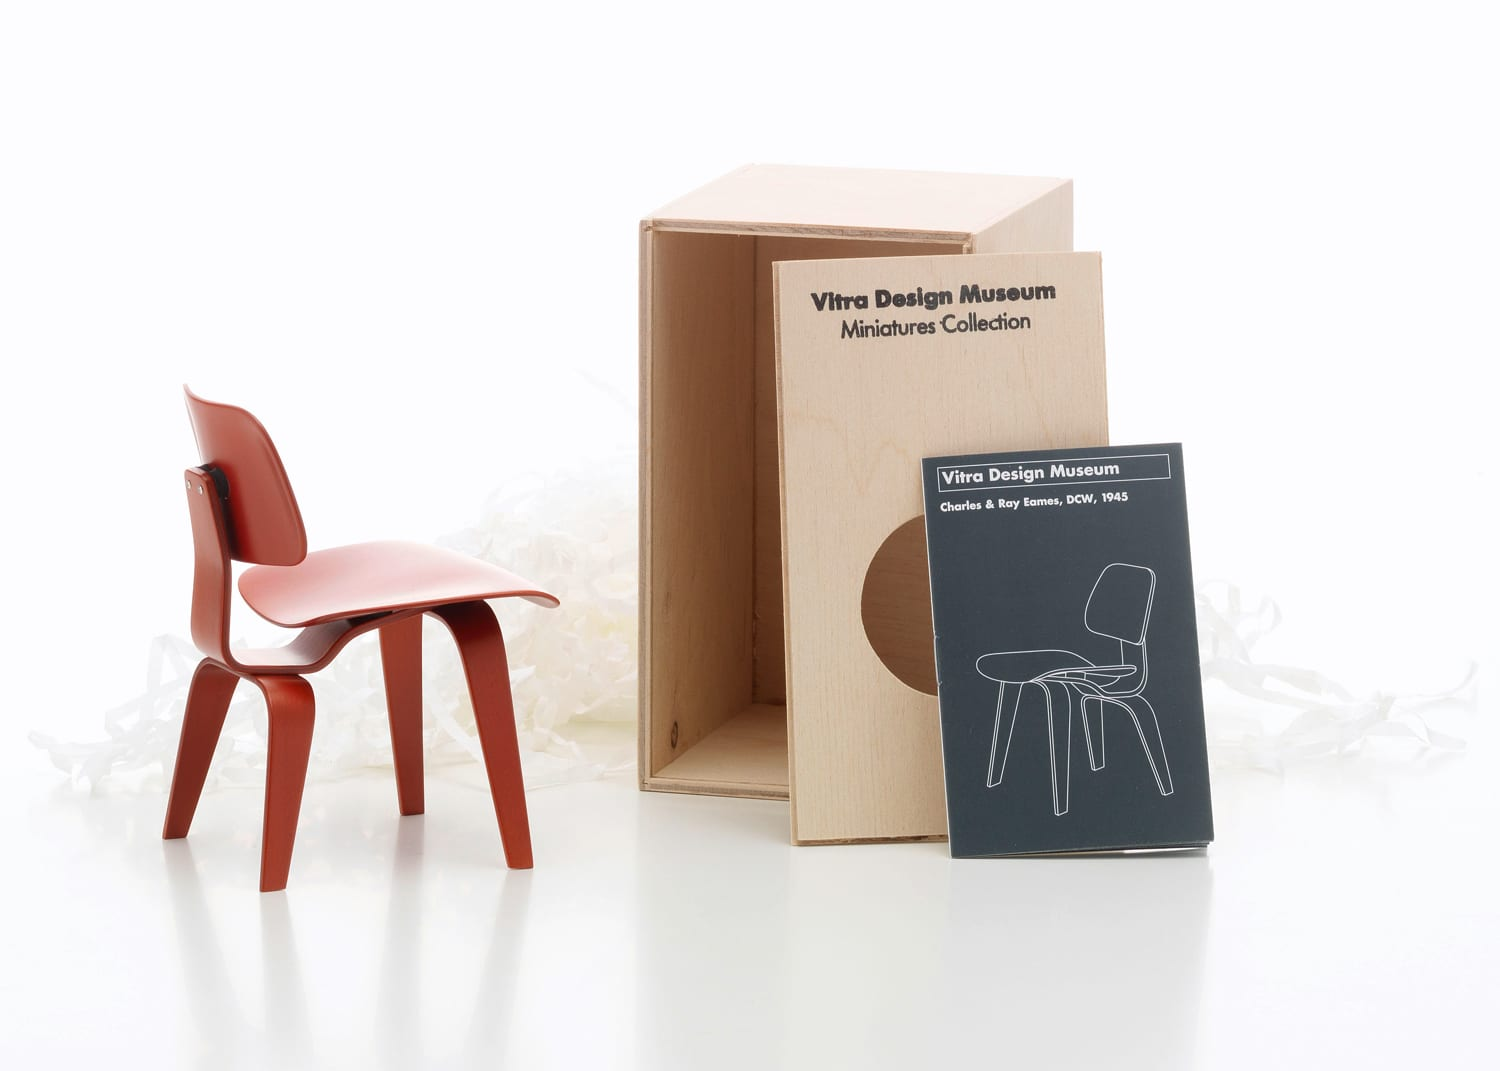 Chaise Design Miniature Vitra 100 Miniatures Exhibition Arrives In Australia